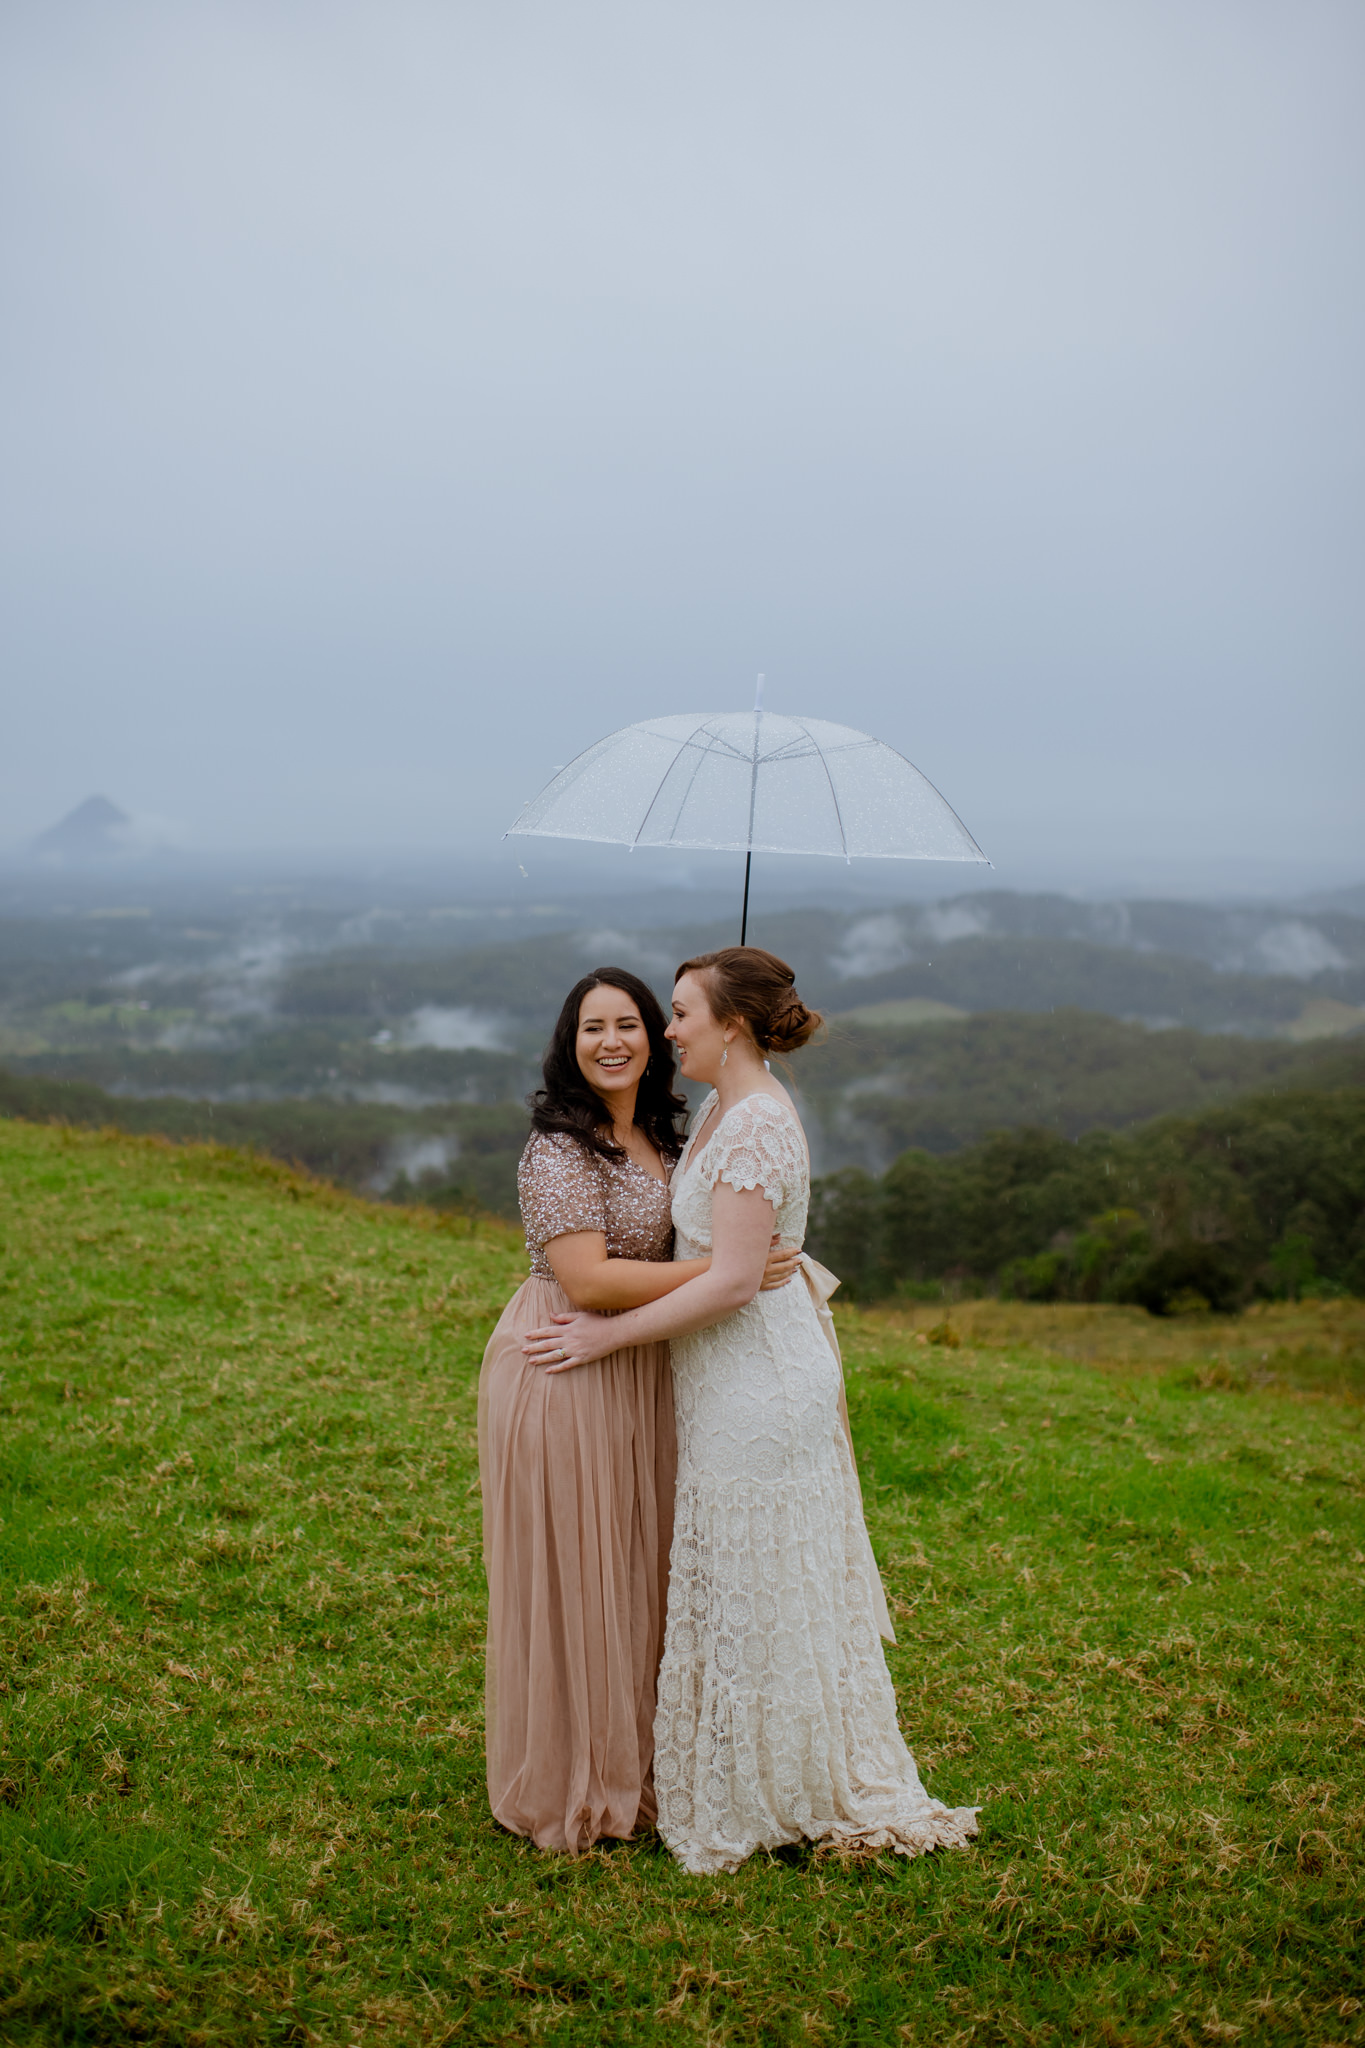 Two brides hugging underneath an umbrealla on a grassy hill in Maleny